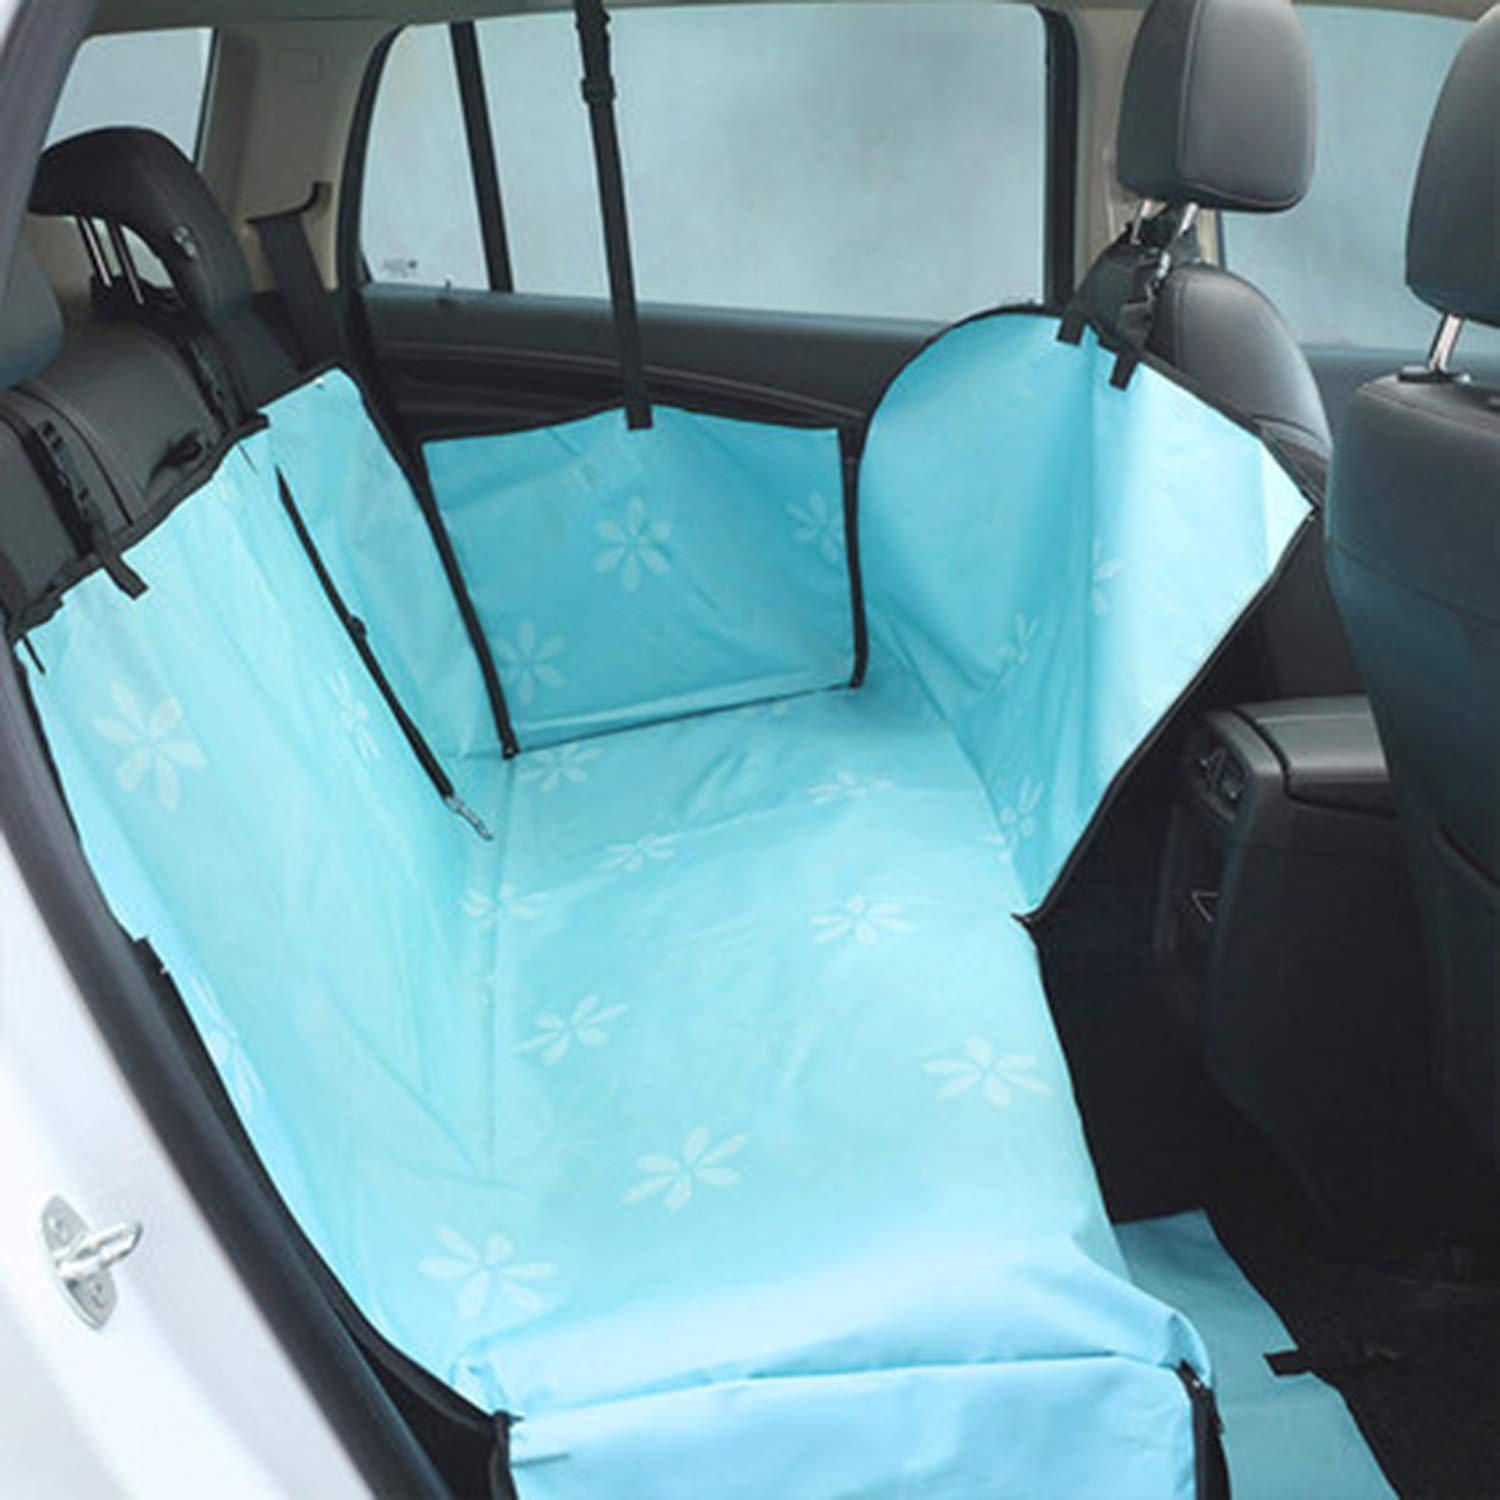 C XCXDX Dog Car Seat Cover, Waterproof Nonslip Mat, Travel Supply, Pet Hammock, 130×140cm